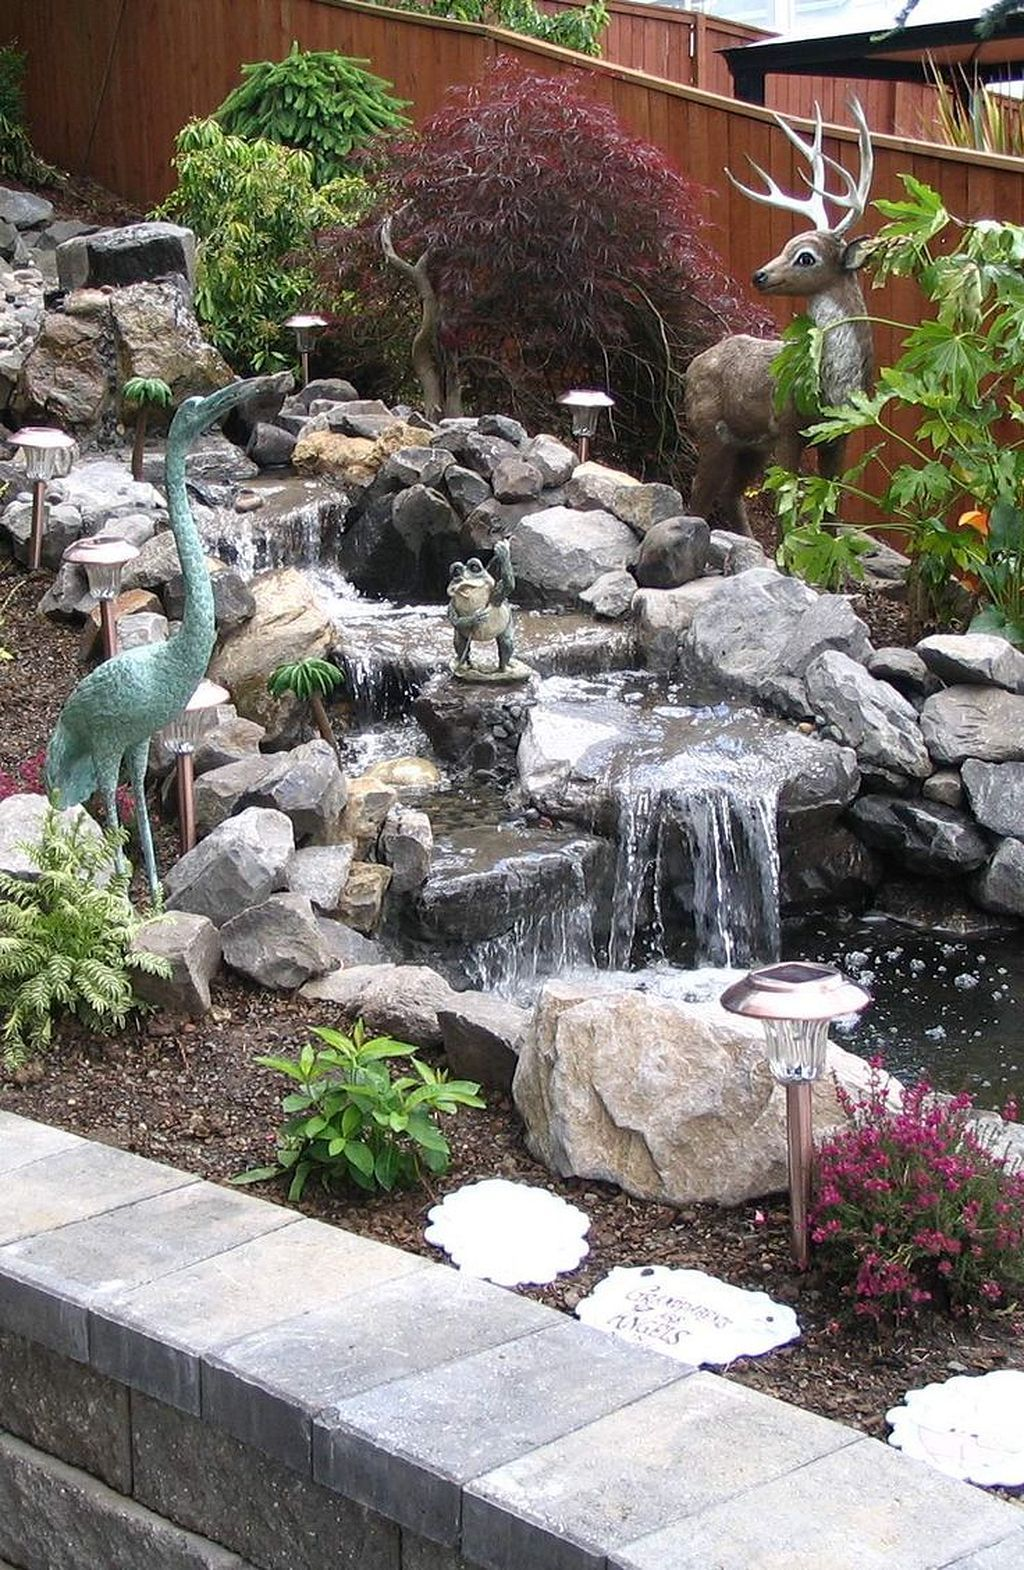 Landscaping ideas Small Backyard Waterfall For